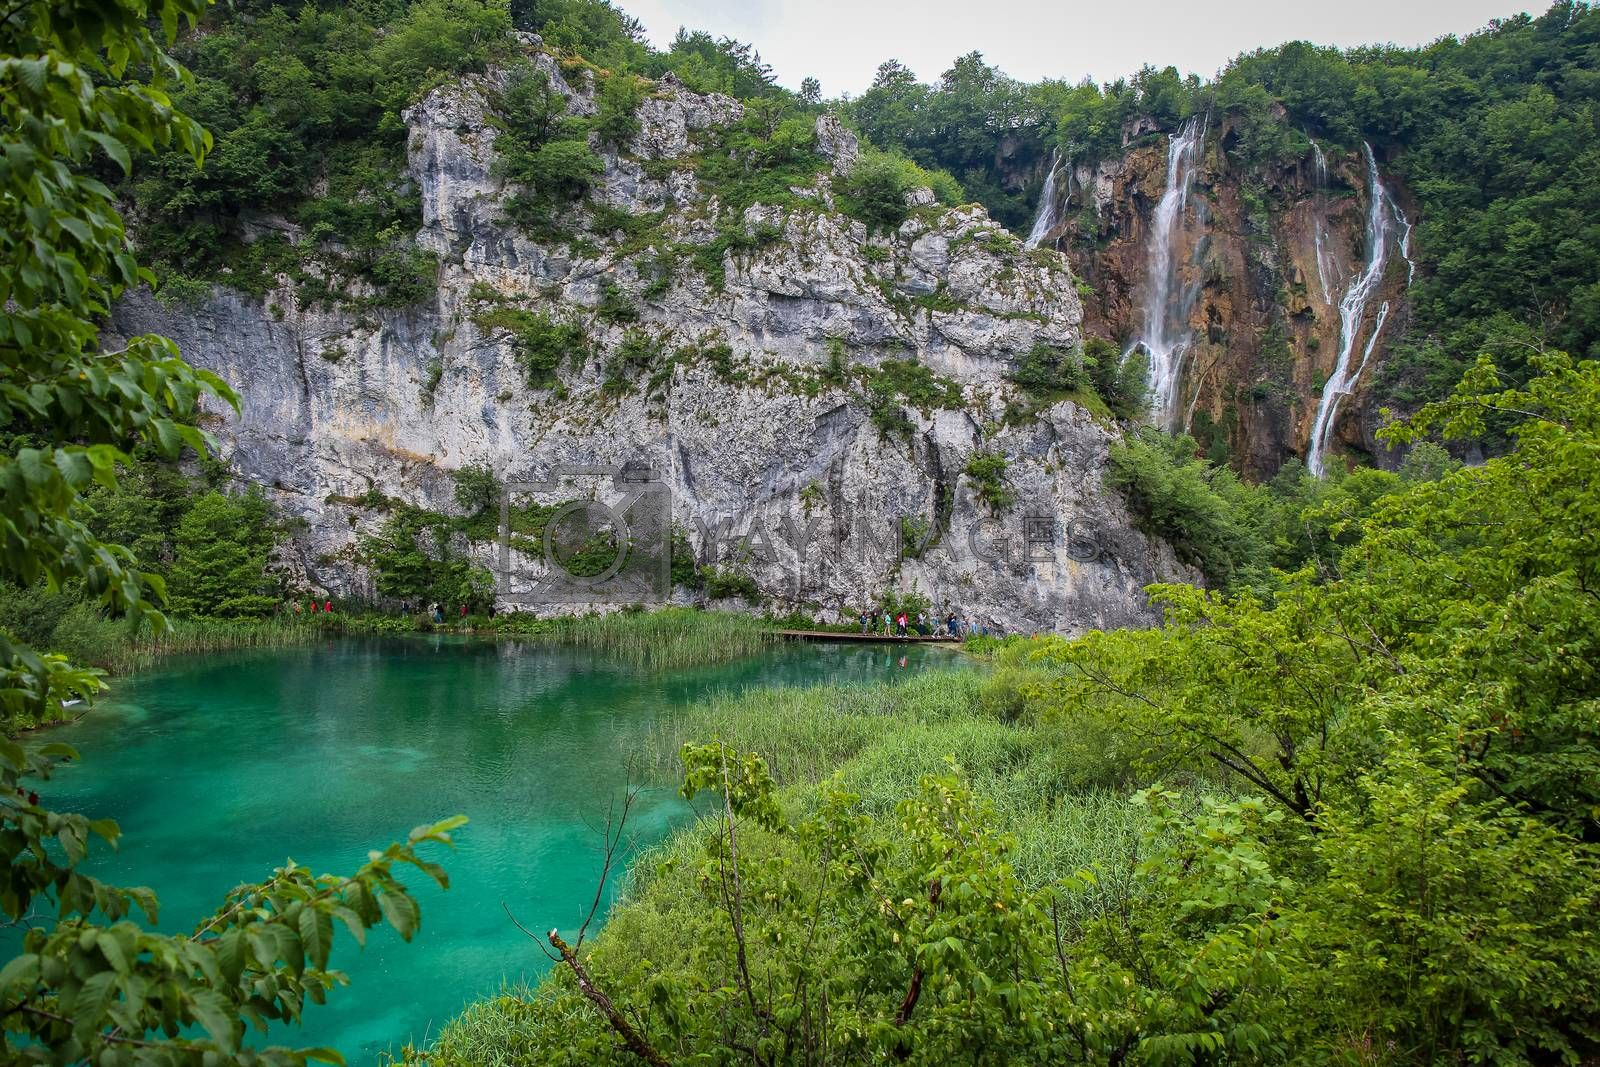 A large waterfall flowing over a mountain into a lake at Plitvice Lakes, UNESCO World Heritage Site, Croatia